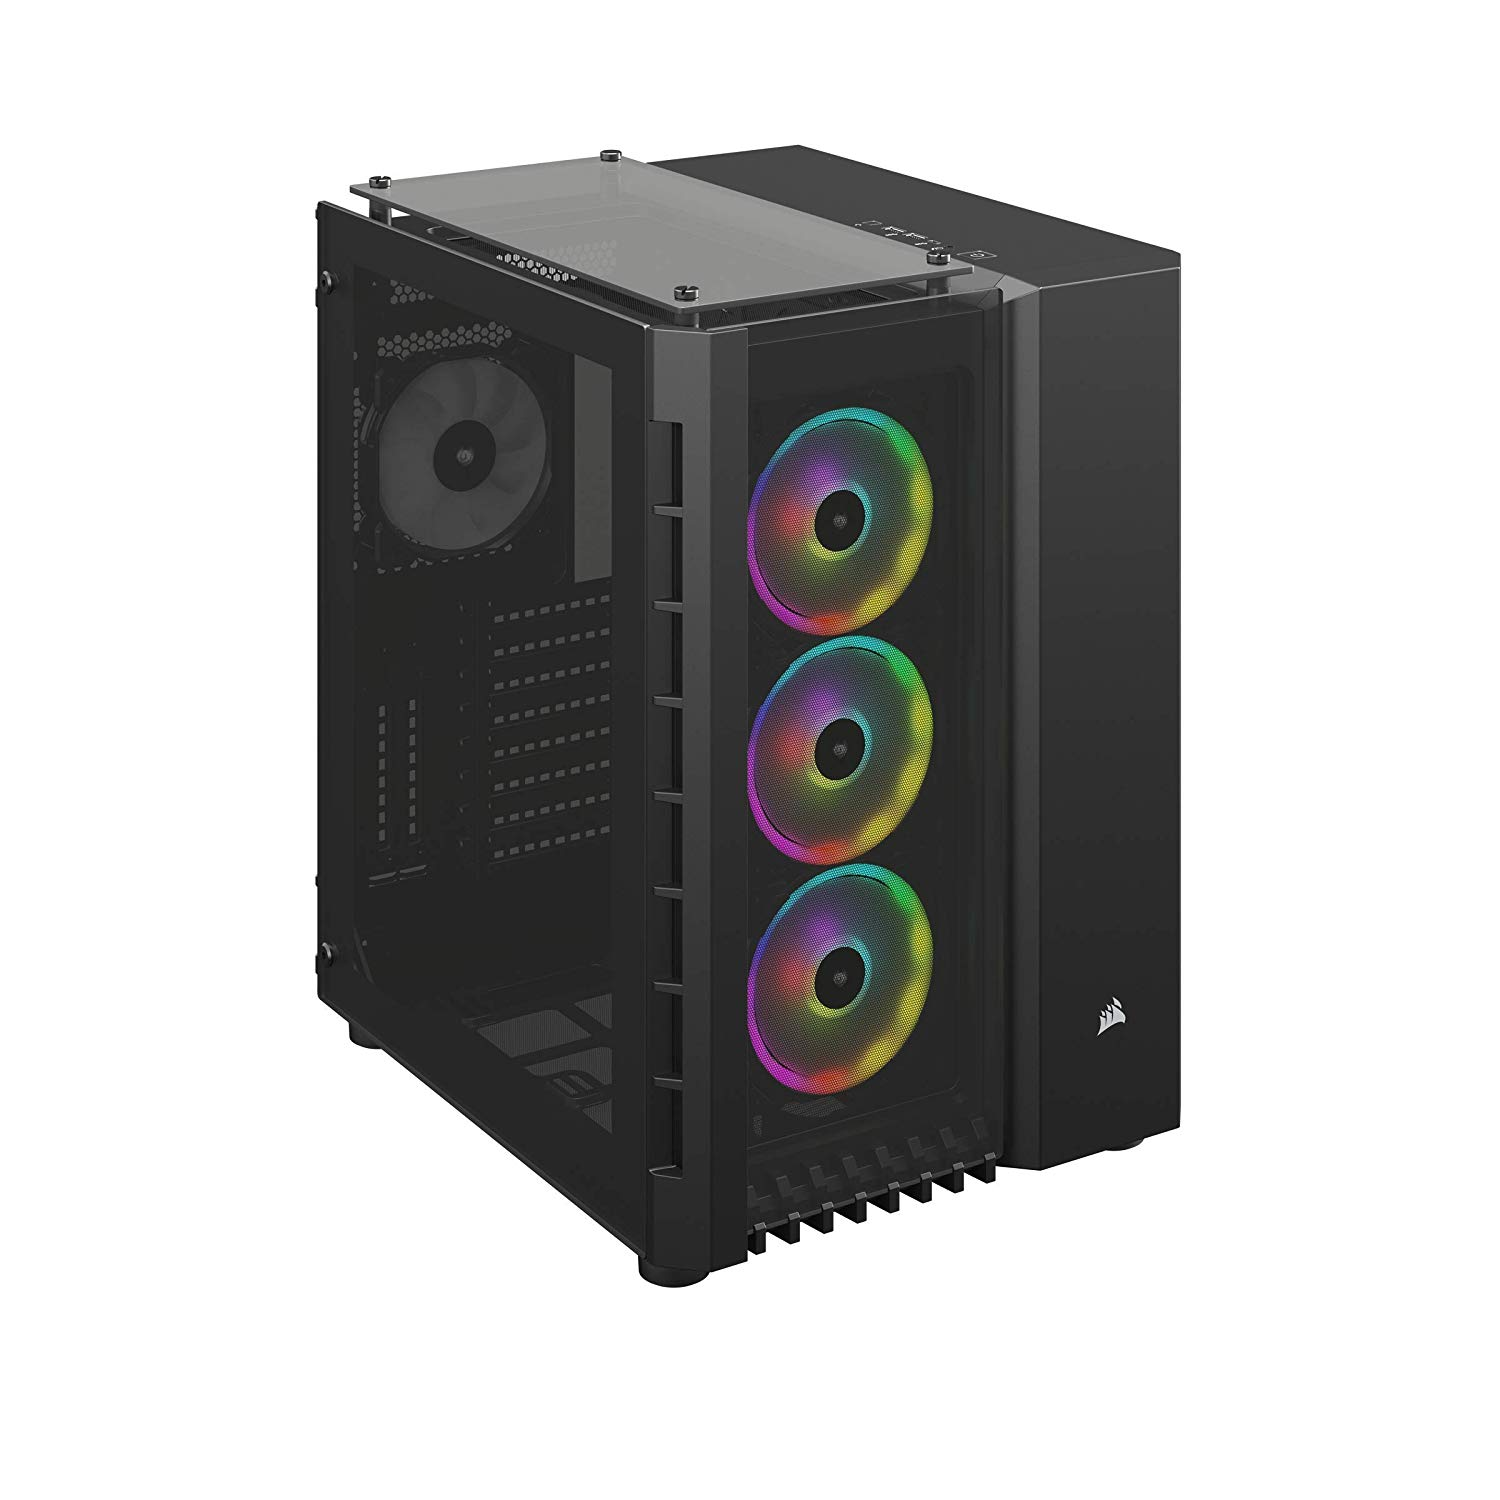 Corsair Crystal 680X RGB Computer Case with Windowed Side Panel - Black